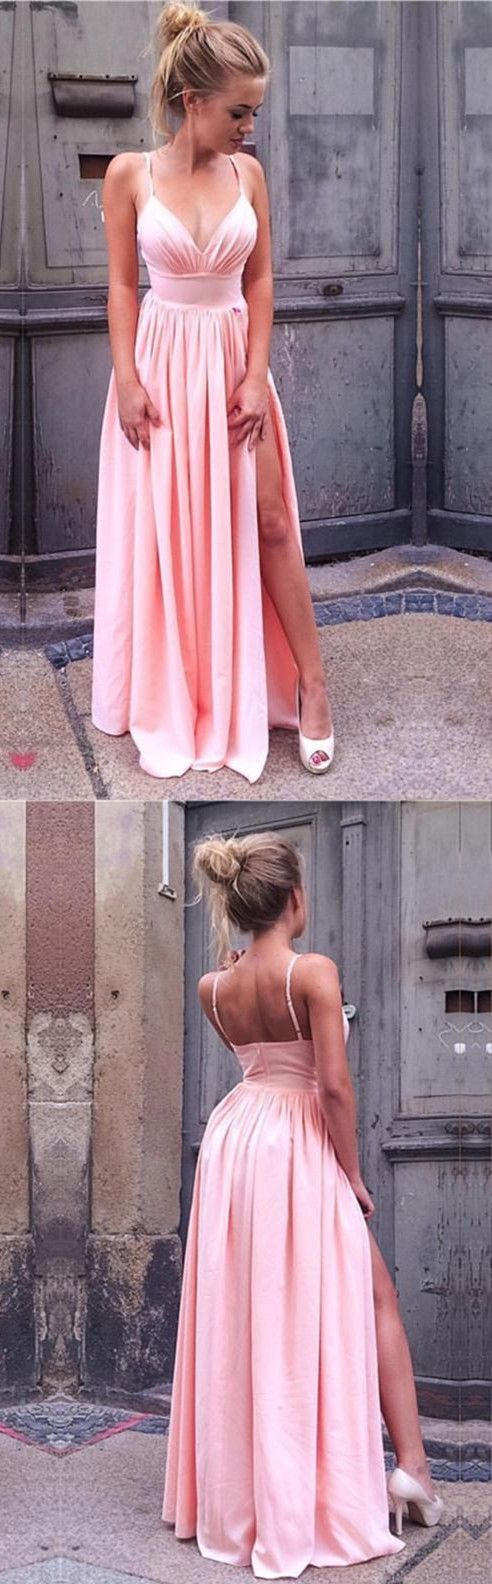 sexy spaghetti straps prom dress pink backless long evening dress with high slit,HS208  #homecomingdress#fashion#promdress#eveningdress#promgowns#cocktaildresss